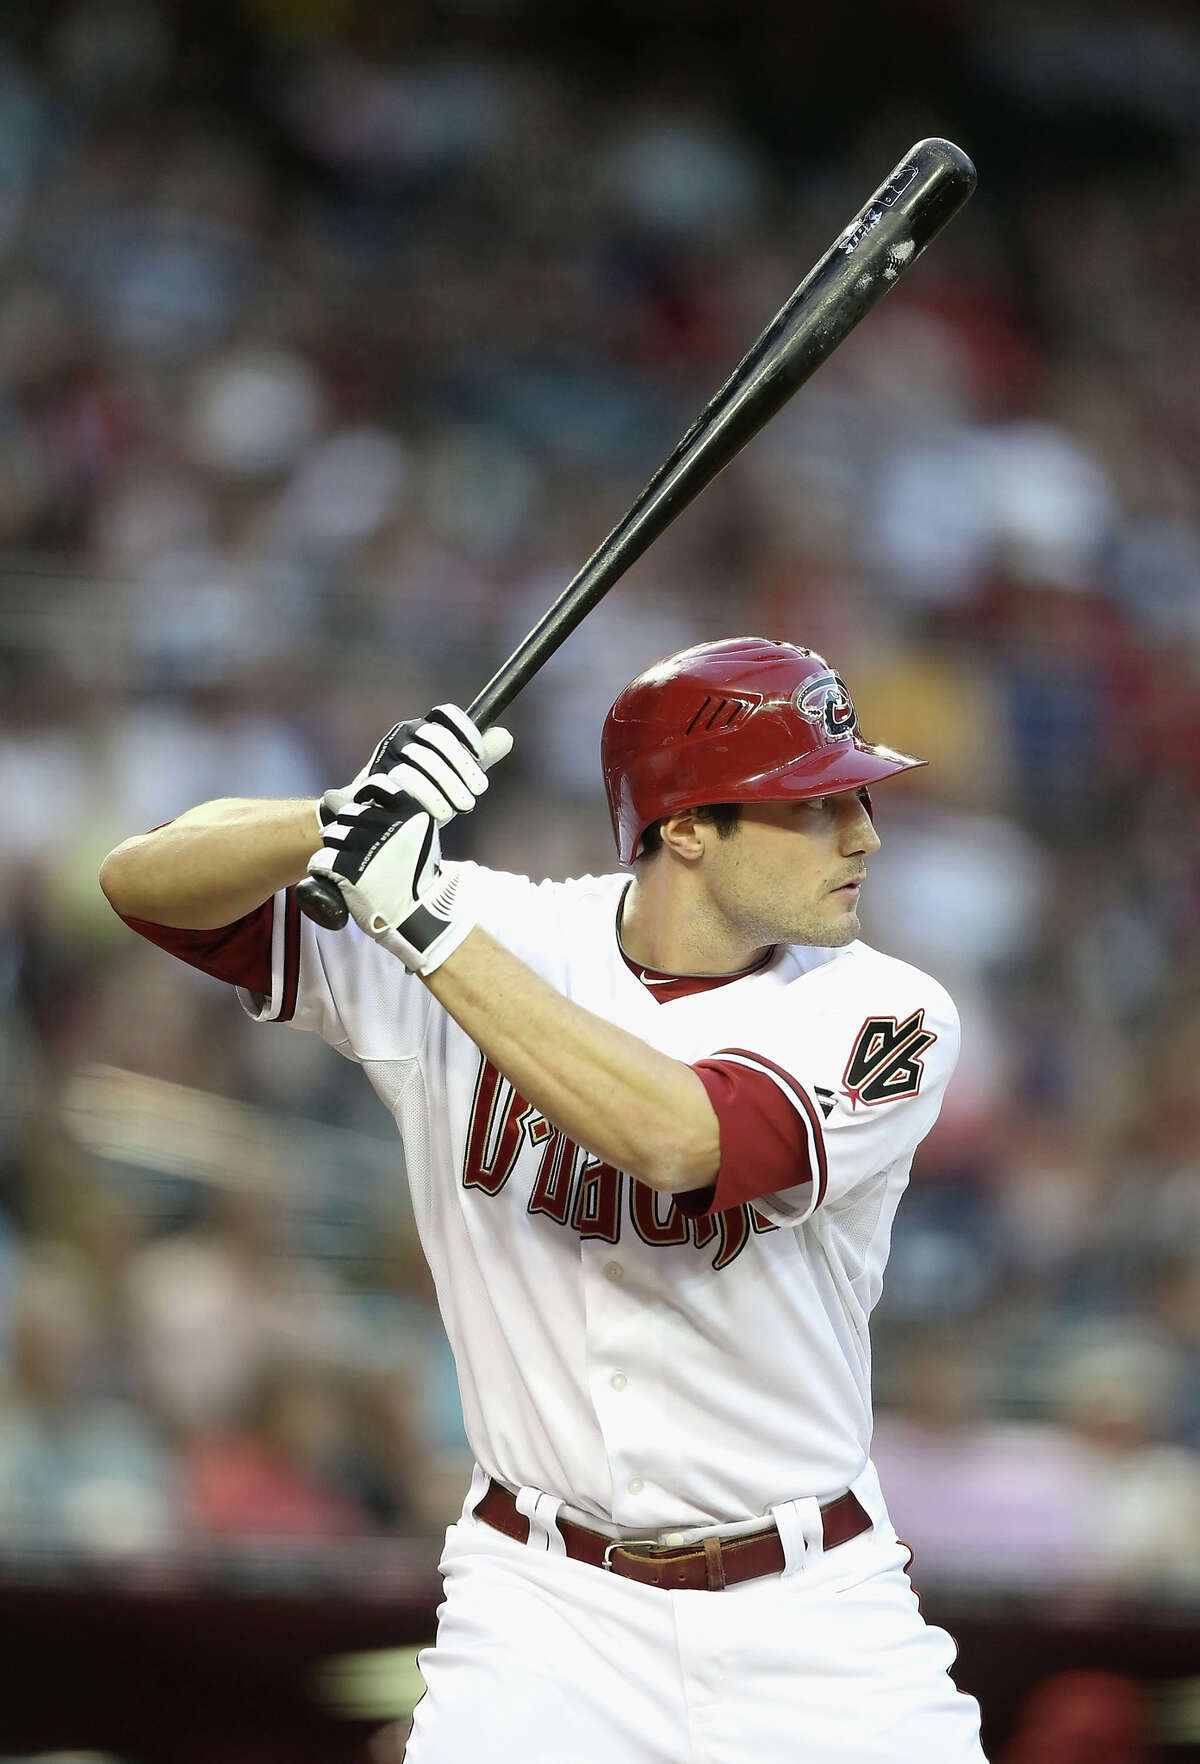 A.J. Pollock was born in Hebron. He begins 2016 on the disabled list with the Arizona Diamondbacks outfield.